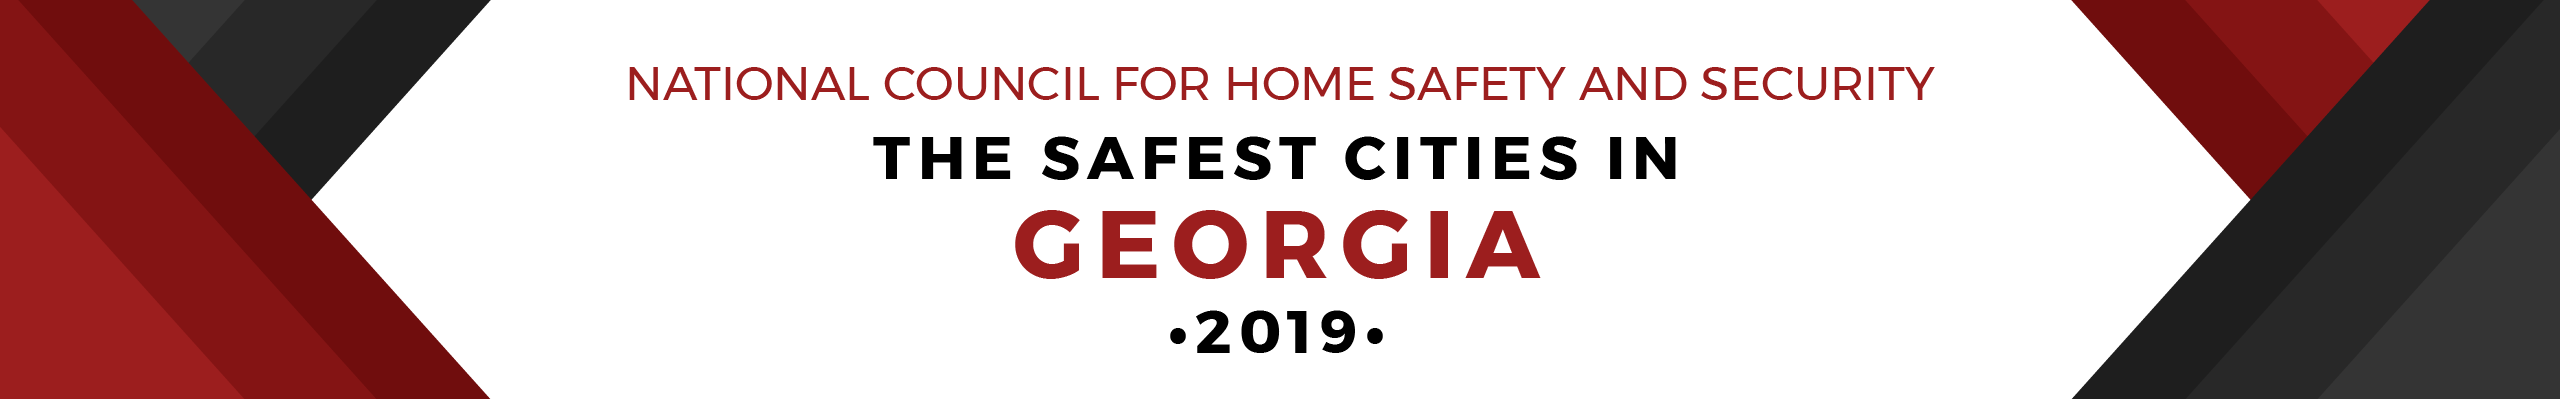 Safest Cities Georgia - header